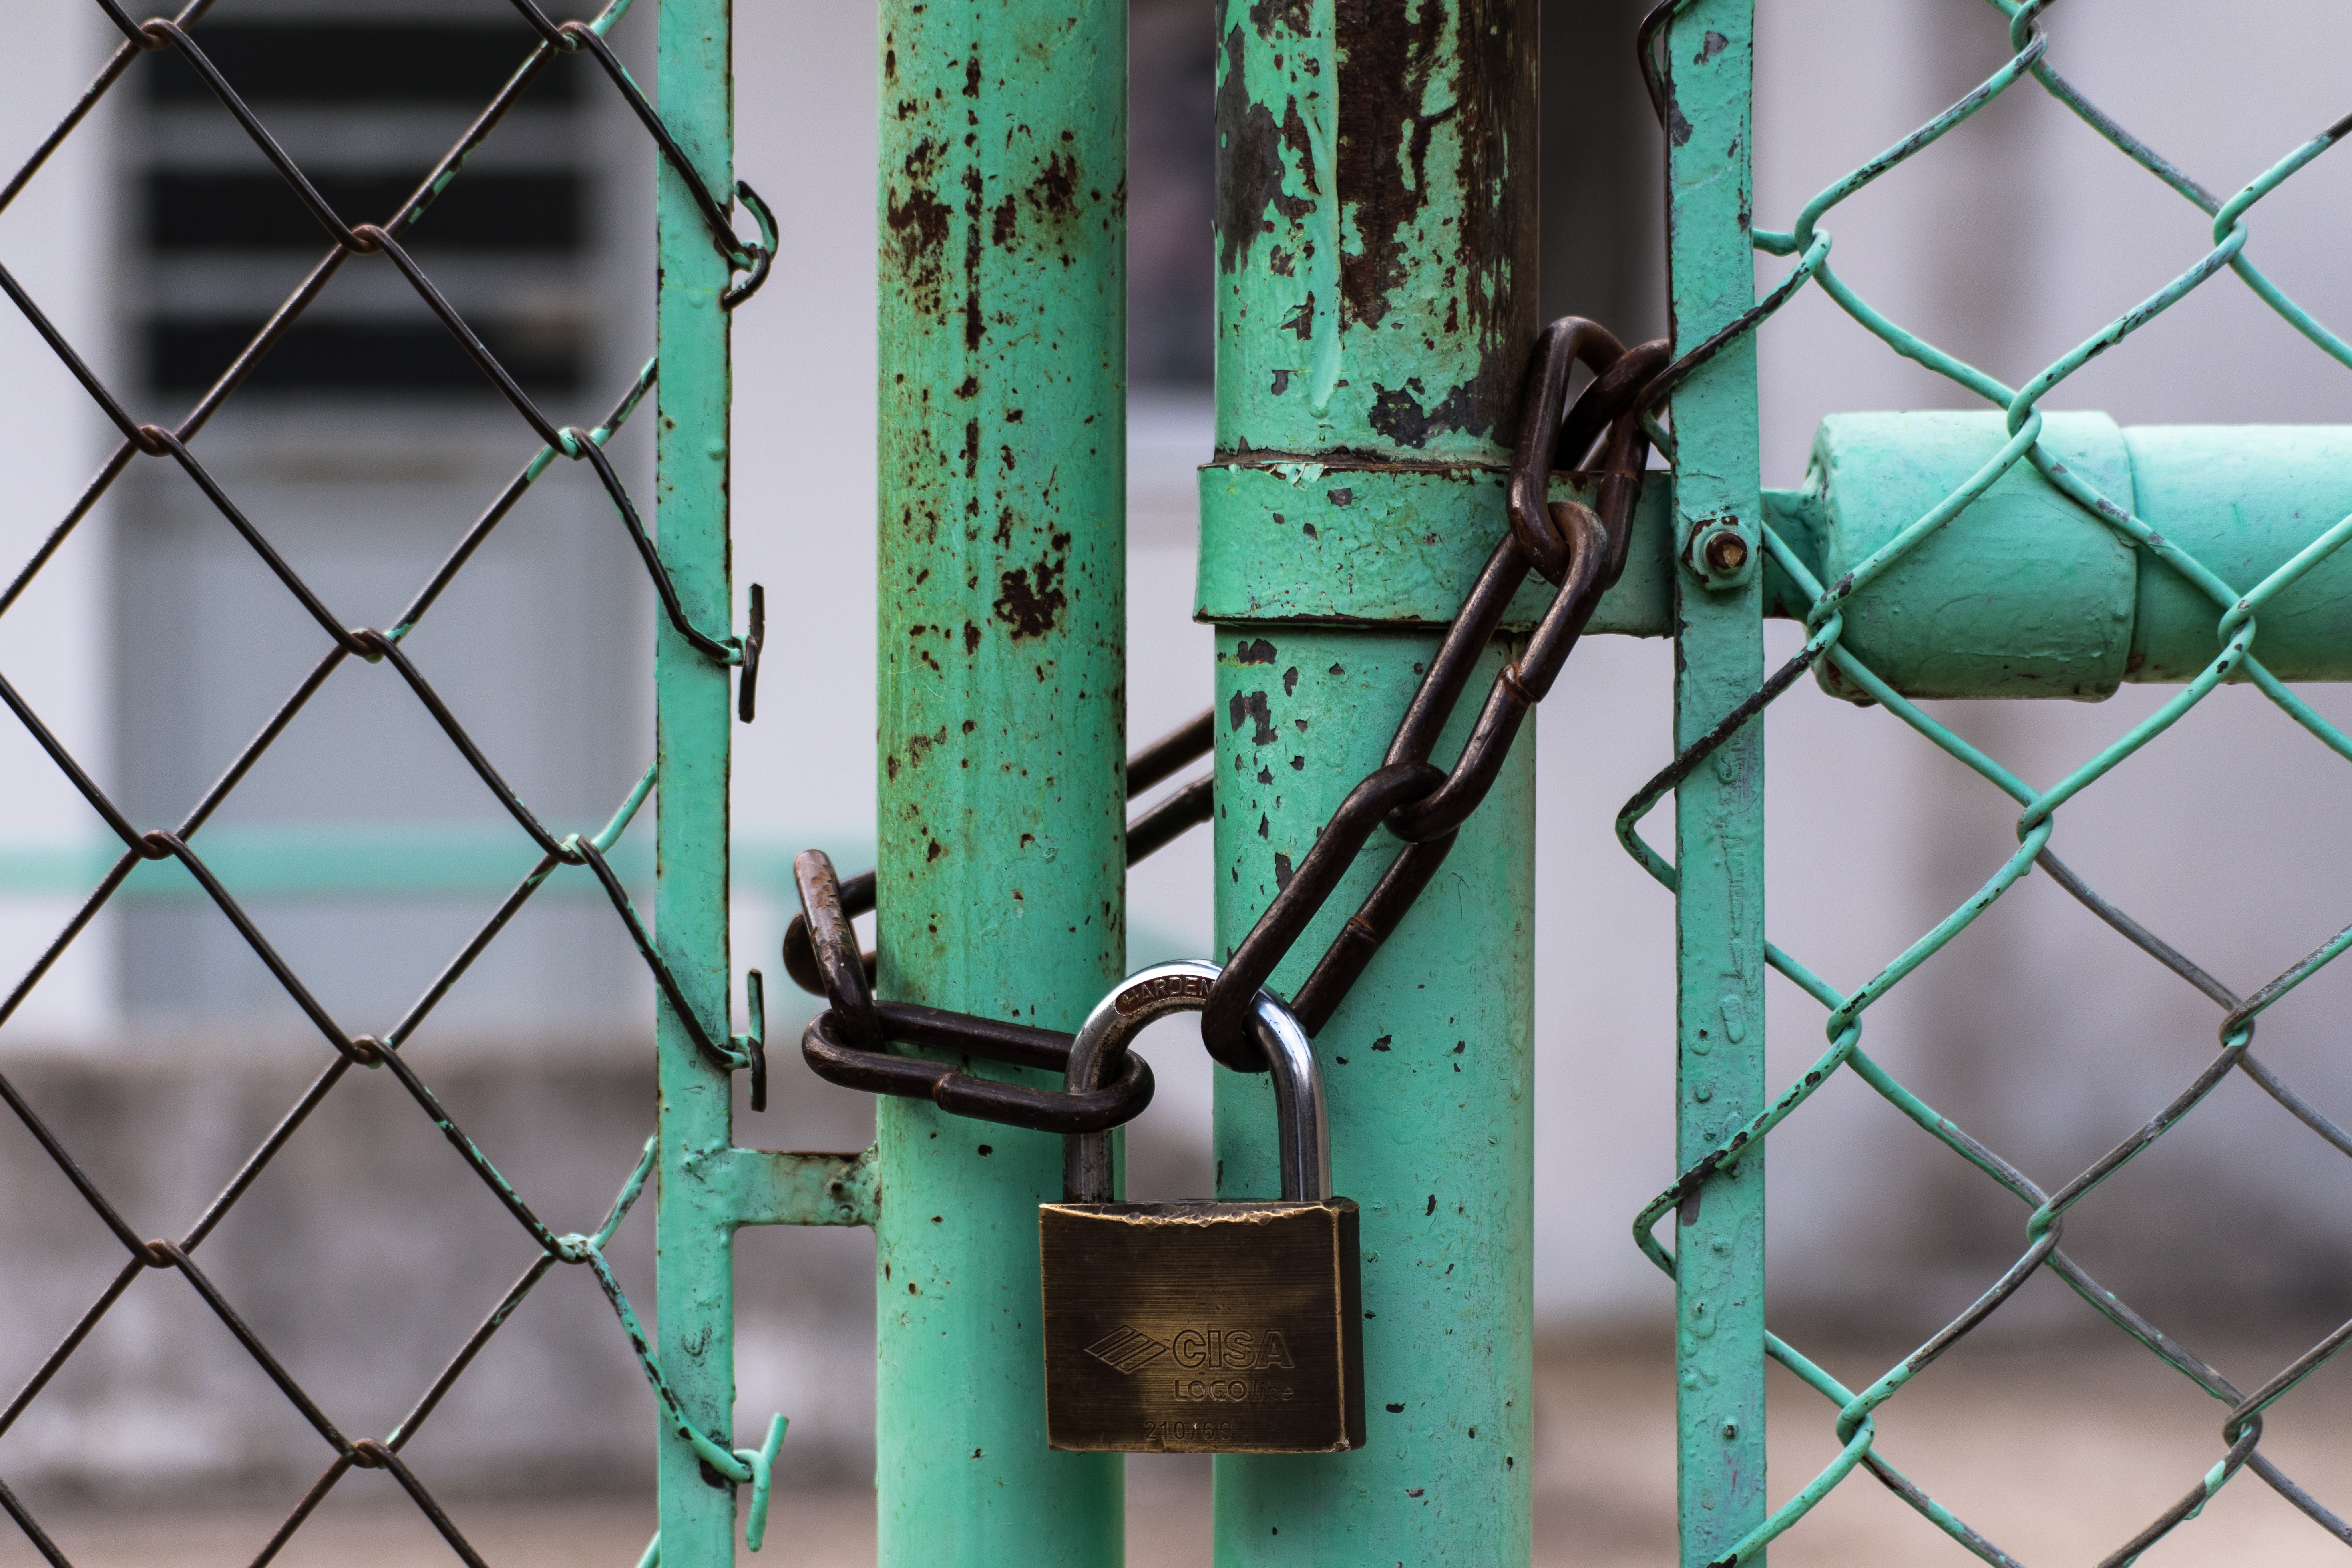 A turquoise chainlink fence with a padlock in Greece